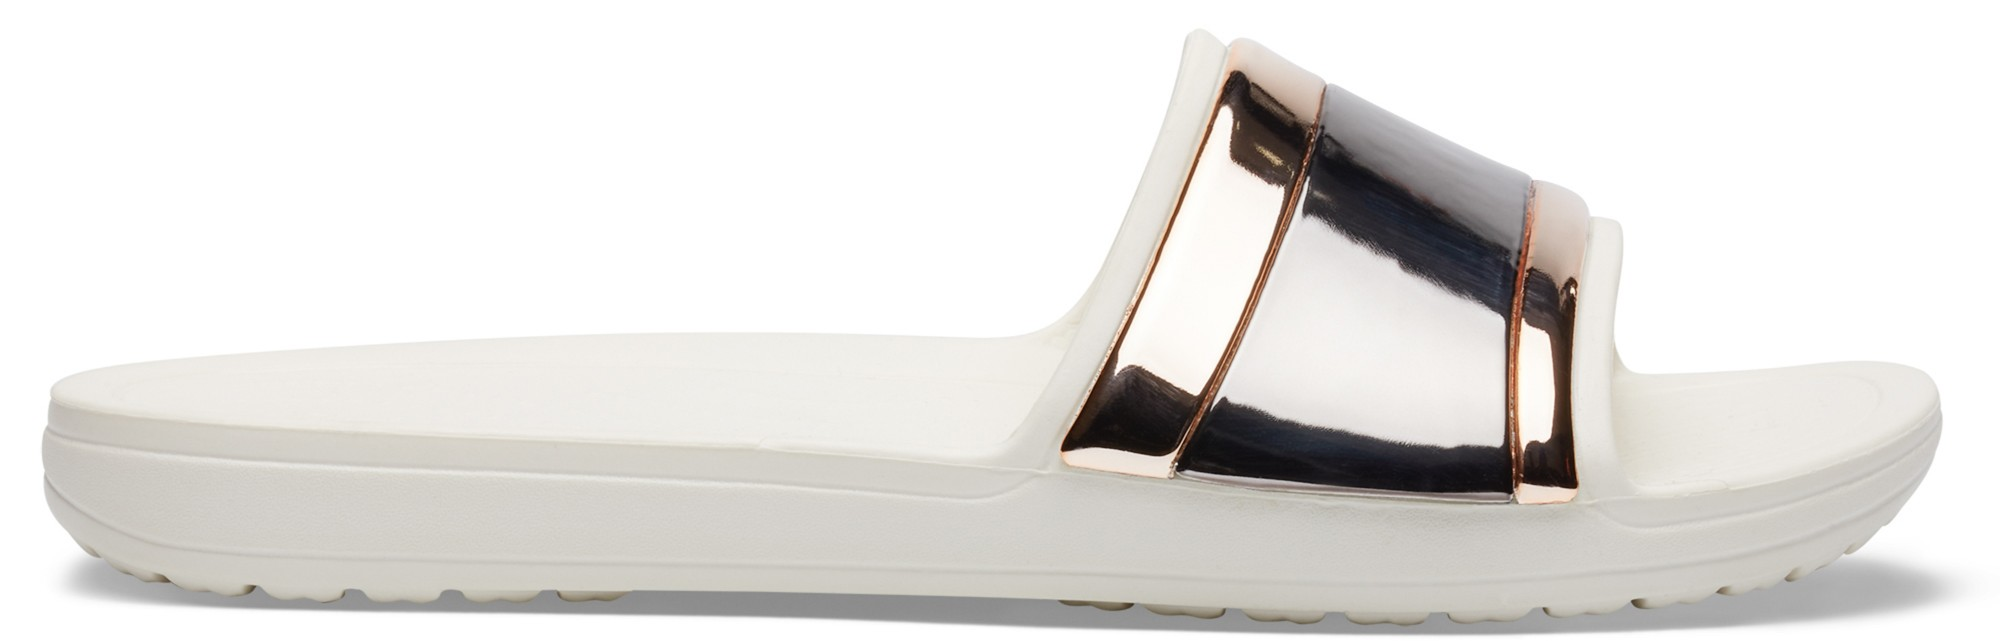 Crocs™ Sloane Metal Block Slide Women's Multi Rose Gold/Oyster 42,5